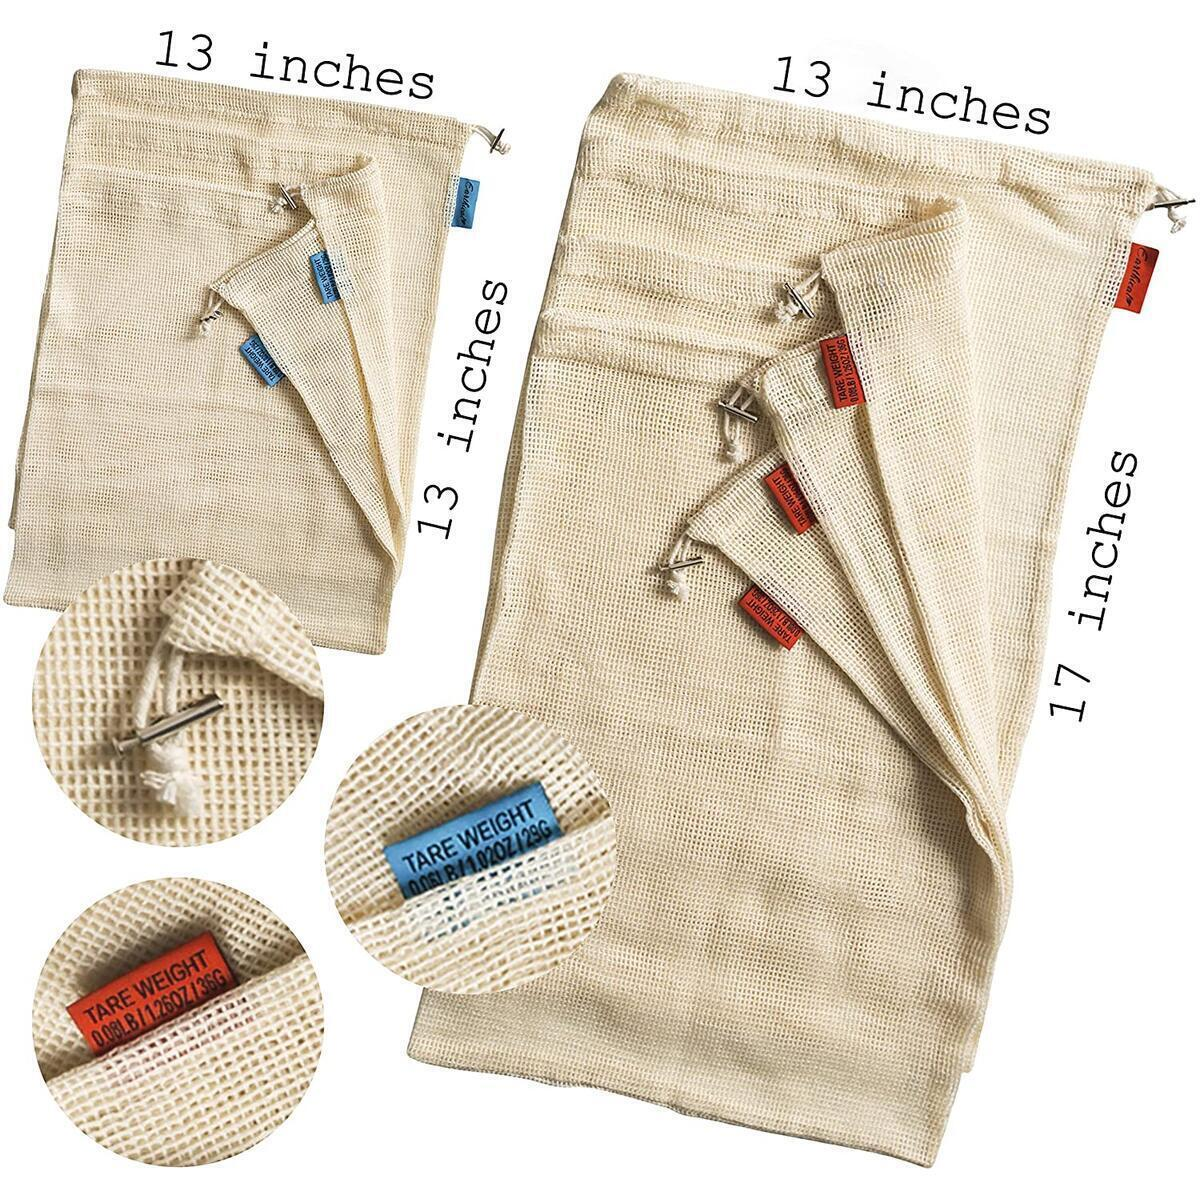 7 Reusable Produce Bags + 2 Reusable Grocery Bags. Reusable Shopping bags, Beach bags, Sandwich bags. Zero Waste. 100% Cotton Mesh. Color-Coded Drawstring by Size & Tare Weight Tags.